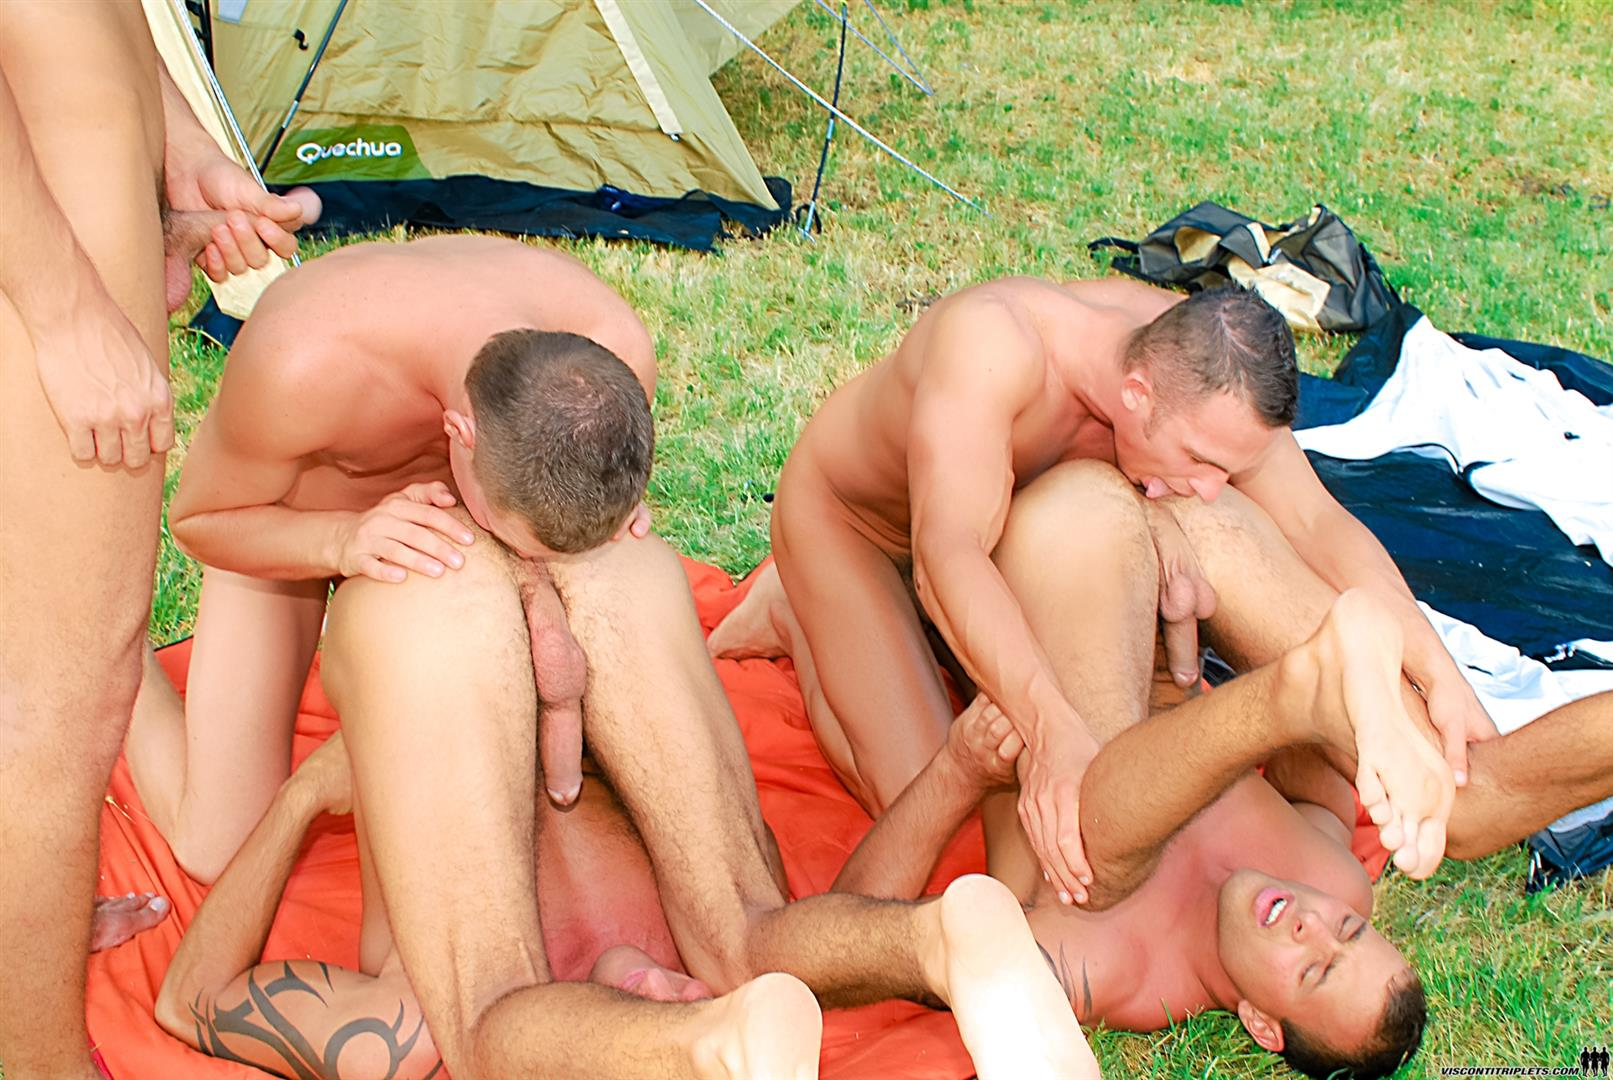 Visconti-Triplets-Jason-Visconti-Jimmy-Visconti-Joey-Visconti-Giuseppe-Pardi-Fucking-During-A-Camping-Trip-Amateur-Gay-Porn-12 Visconti Triplets Tag Team Some Muscle Ass While Camping